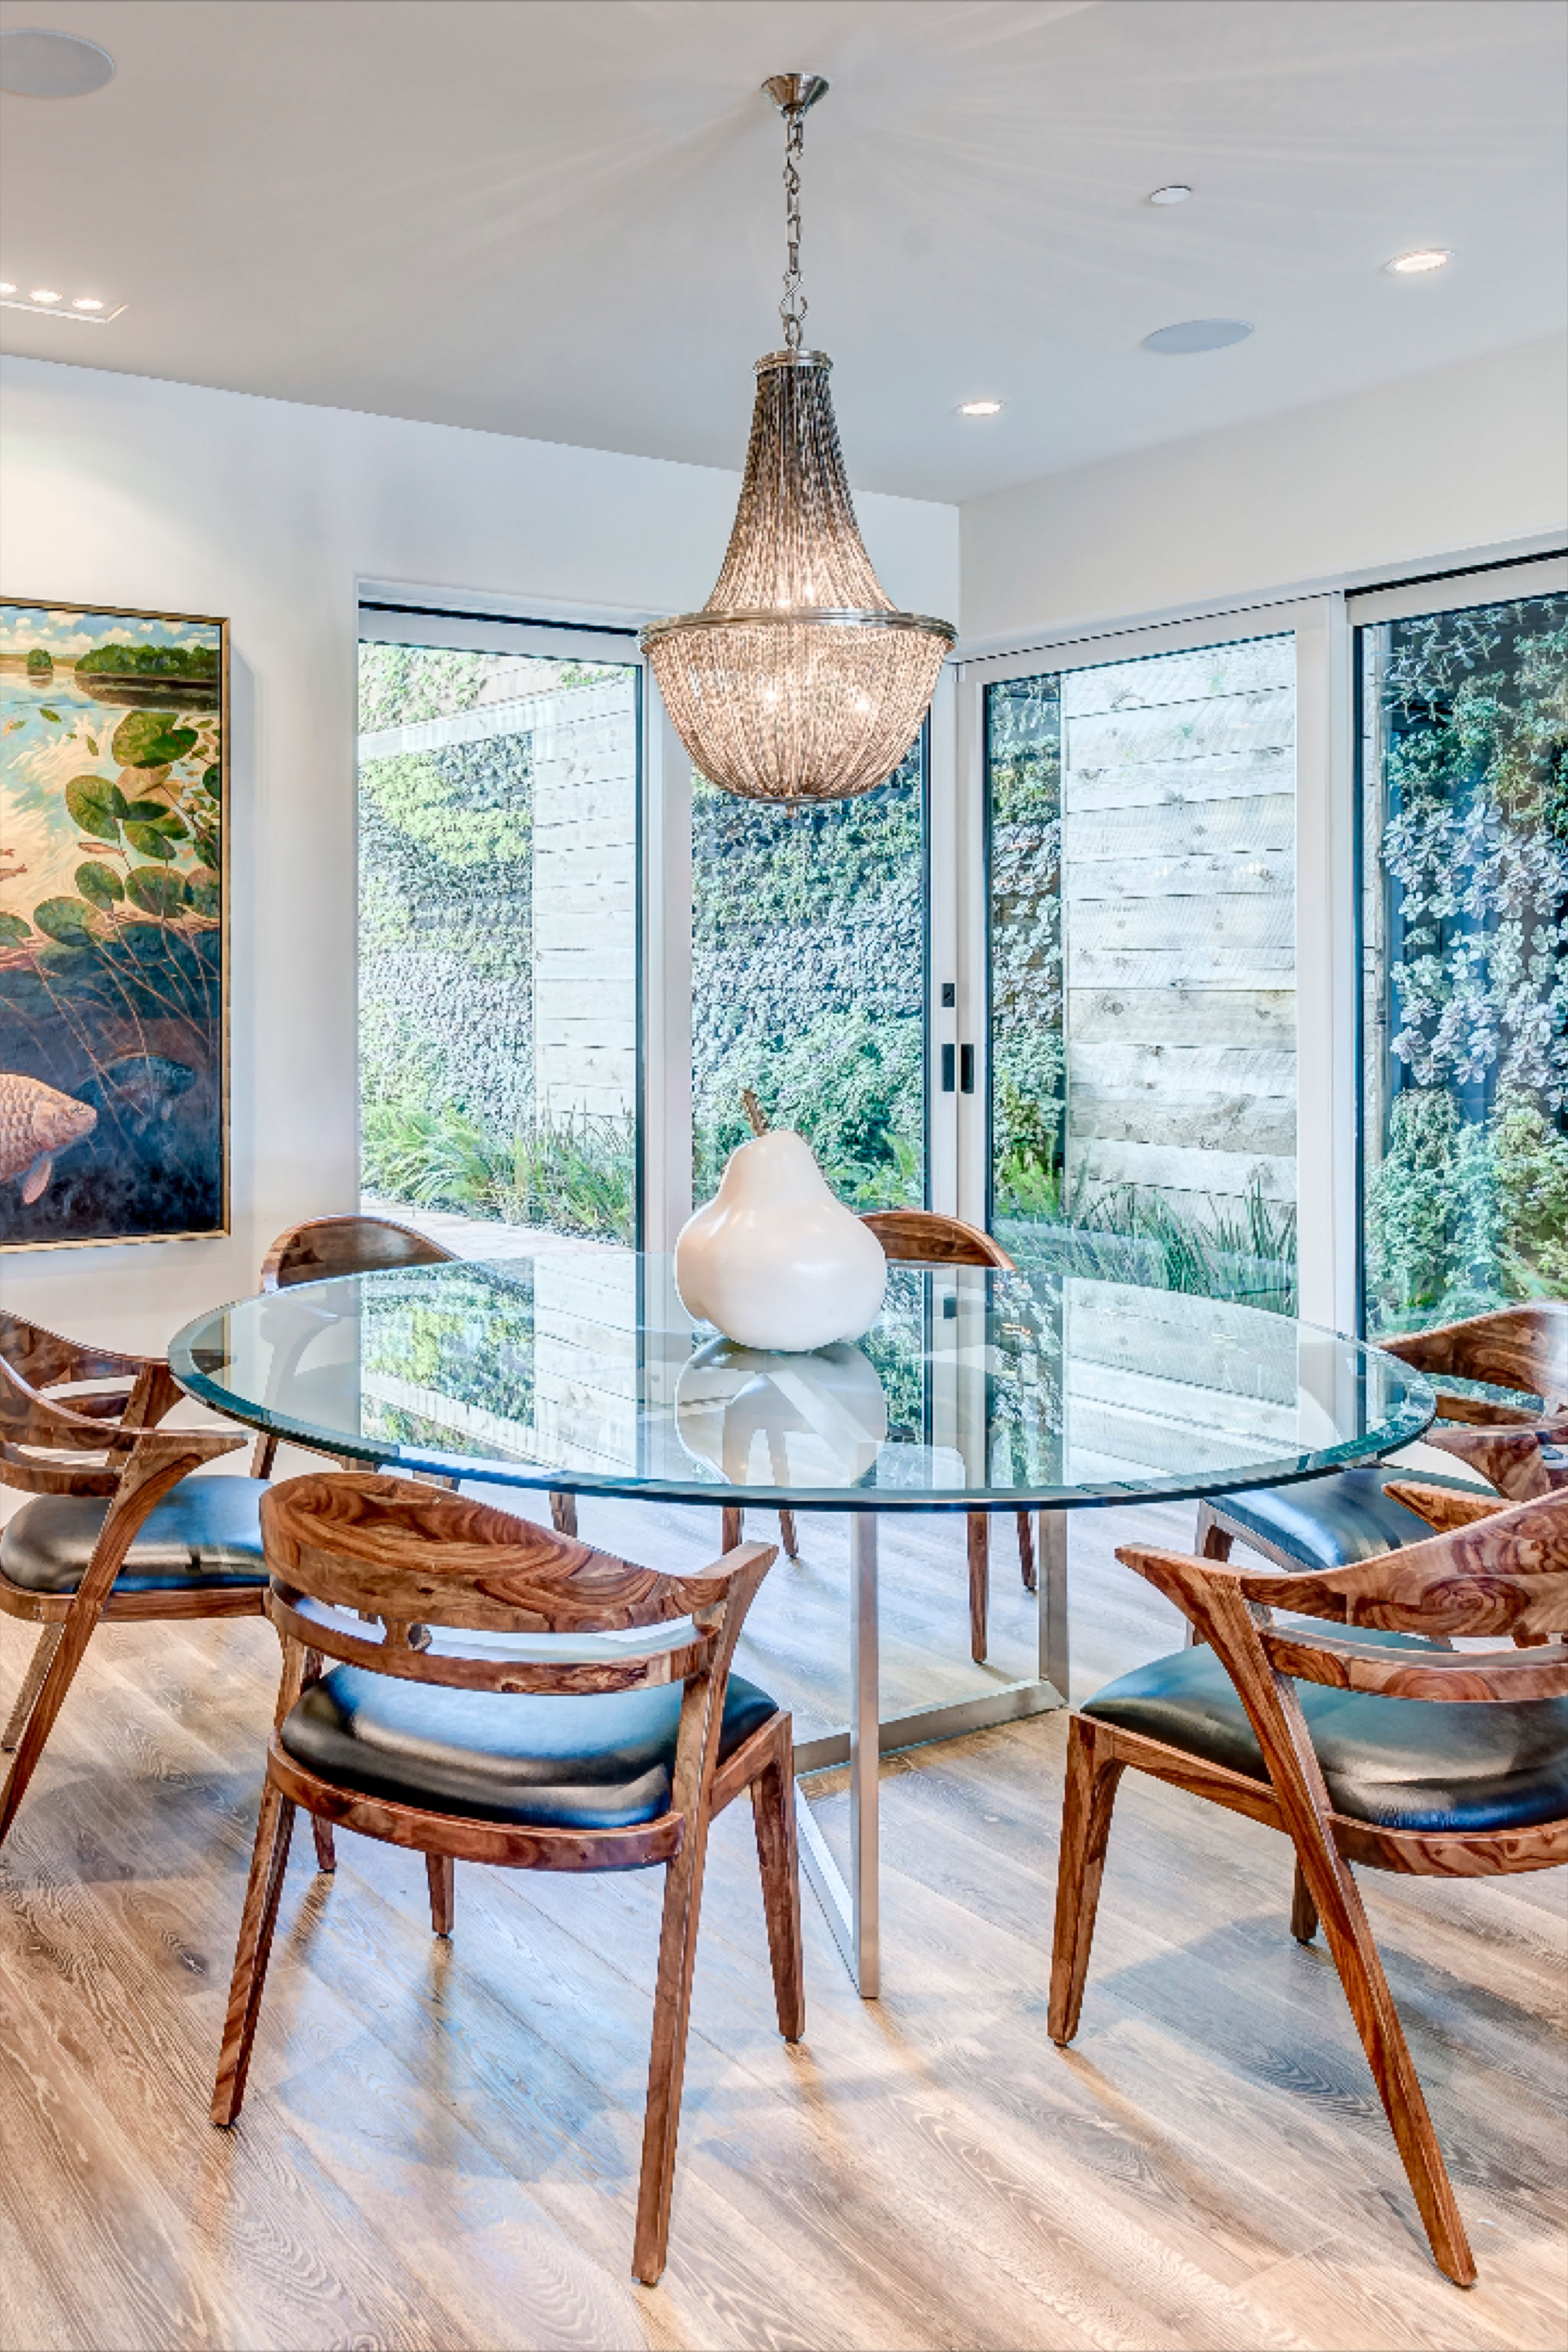 214 Narcissus Ave. Captivating contemporary home with expansive ocean view. #coronadelmar #realestate #orangecounty #luxuryhome #interiordesign #diningroom